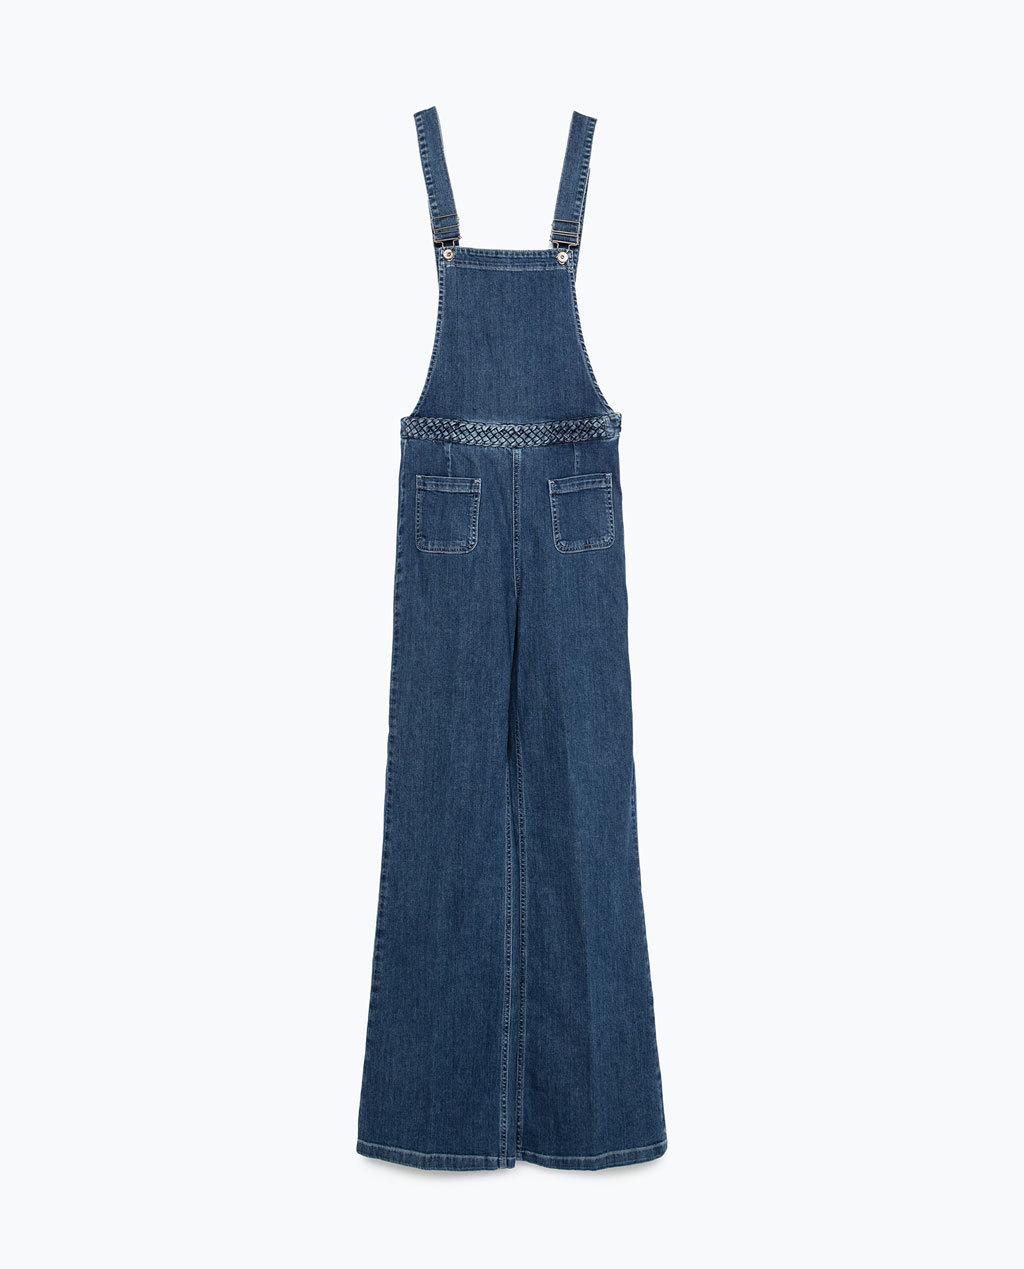 Denim Dungarees - length: standard; pattern: plain; sleeve style: sleeveless; hip detail: front pockets at hip; predominant colour: pale blue; occasions: casual; fit: fitted at waist & bust; fibres: cotton - stretch; sleeve length: sleeveless; texture group: denim; style: dungarees; neckline: low square neck; pattern type: fabric; season: a/w 2015; trends: folky 70s; wardrobe: highlight